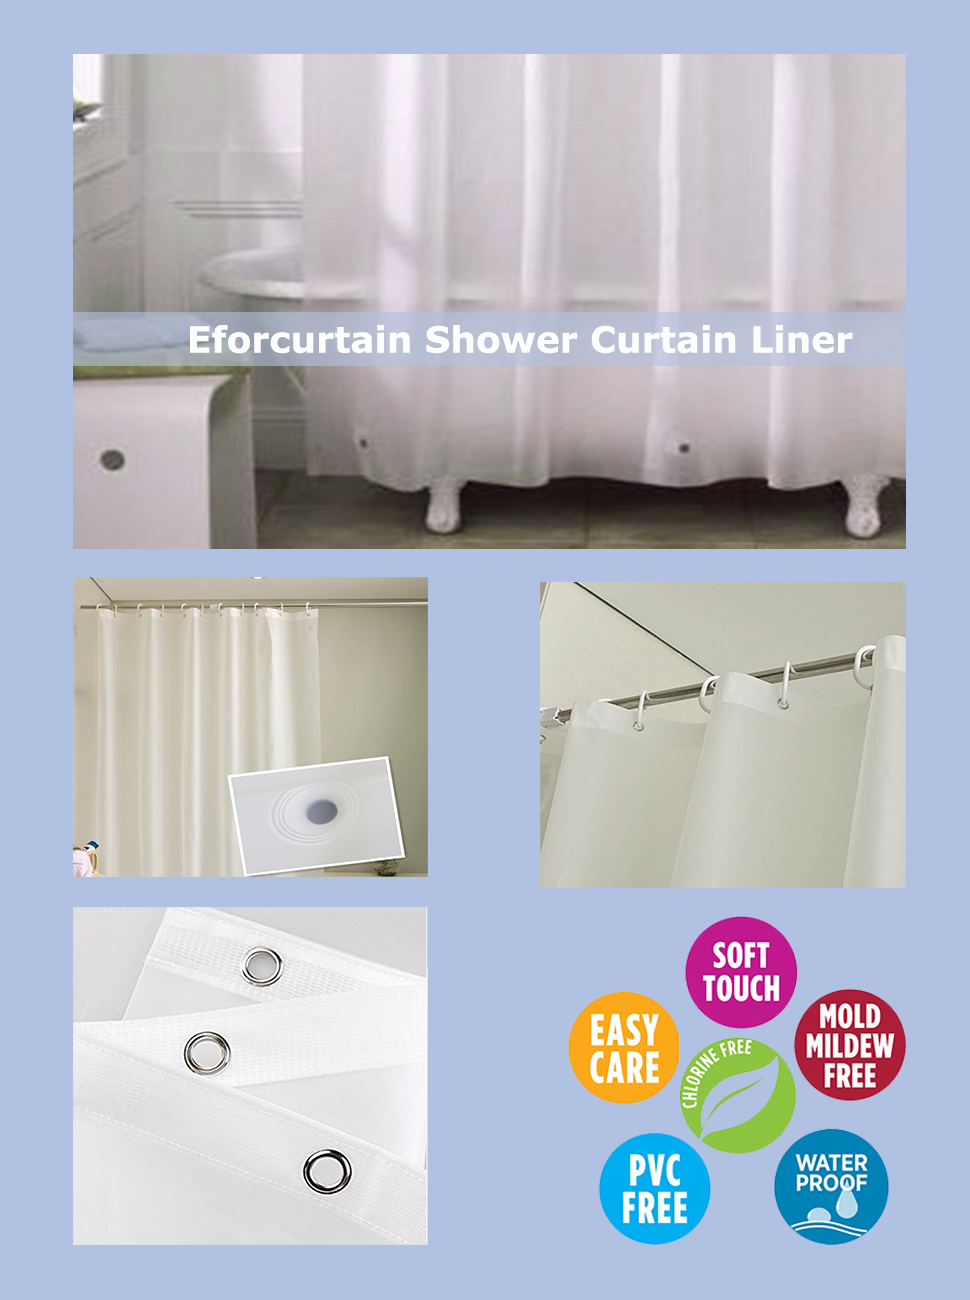 Amazon.com: Eforcurtain Modern Bathroom Liner With Magnets ...